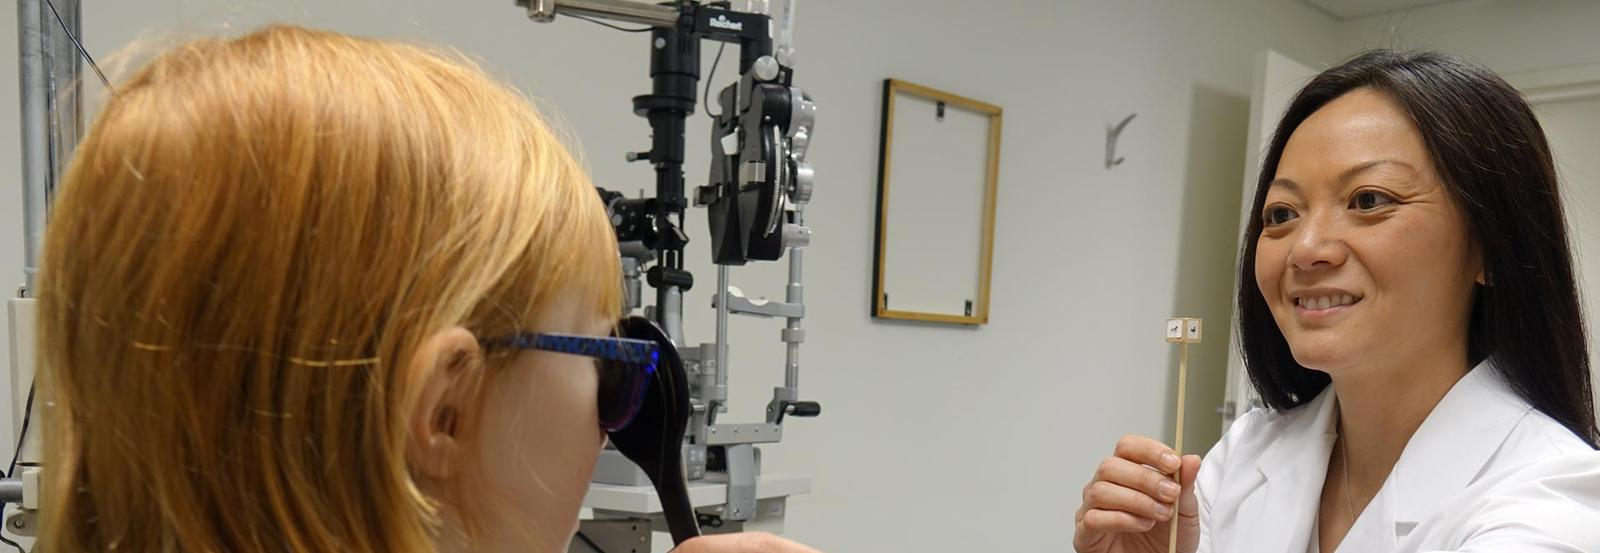 optometrist eye exam  with a child